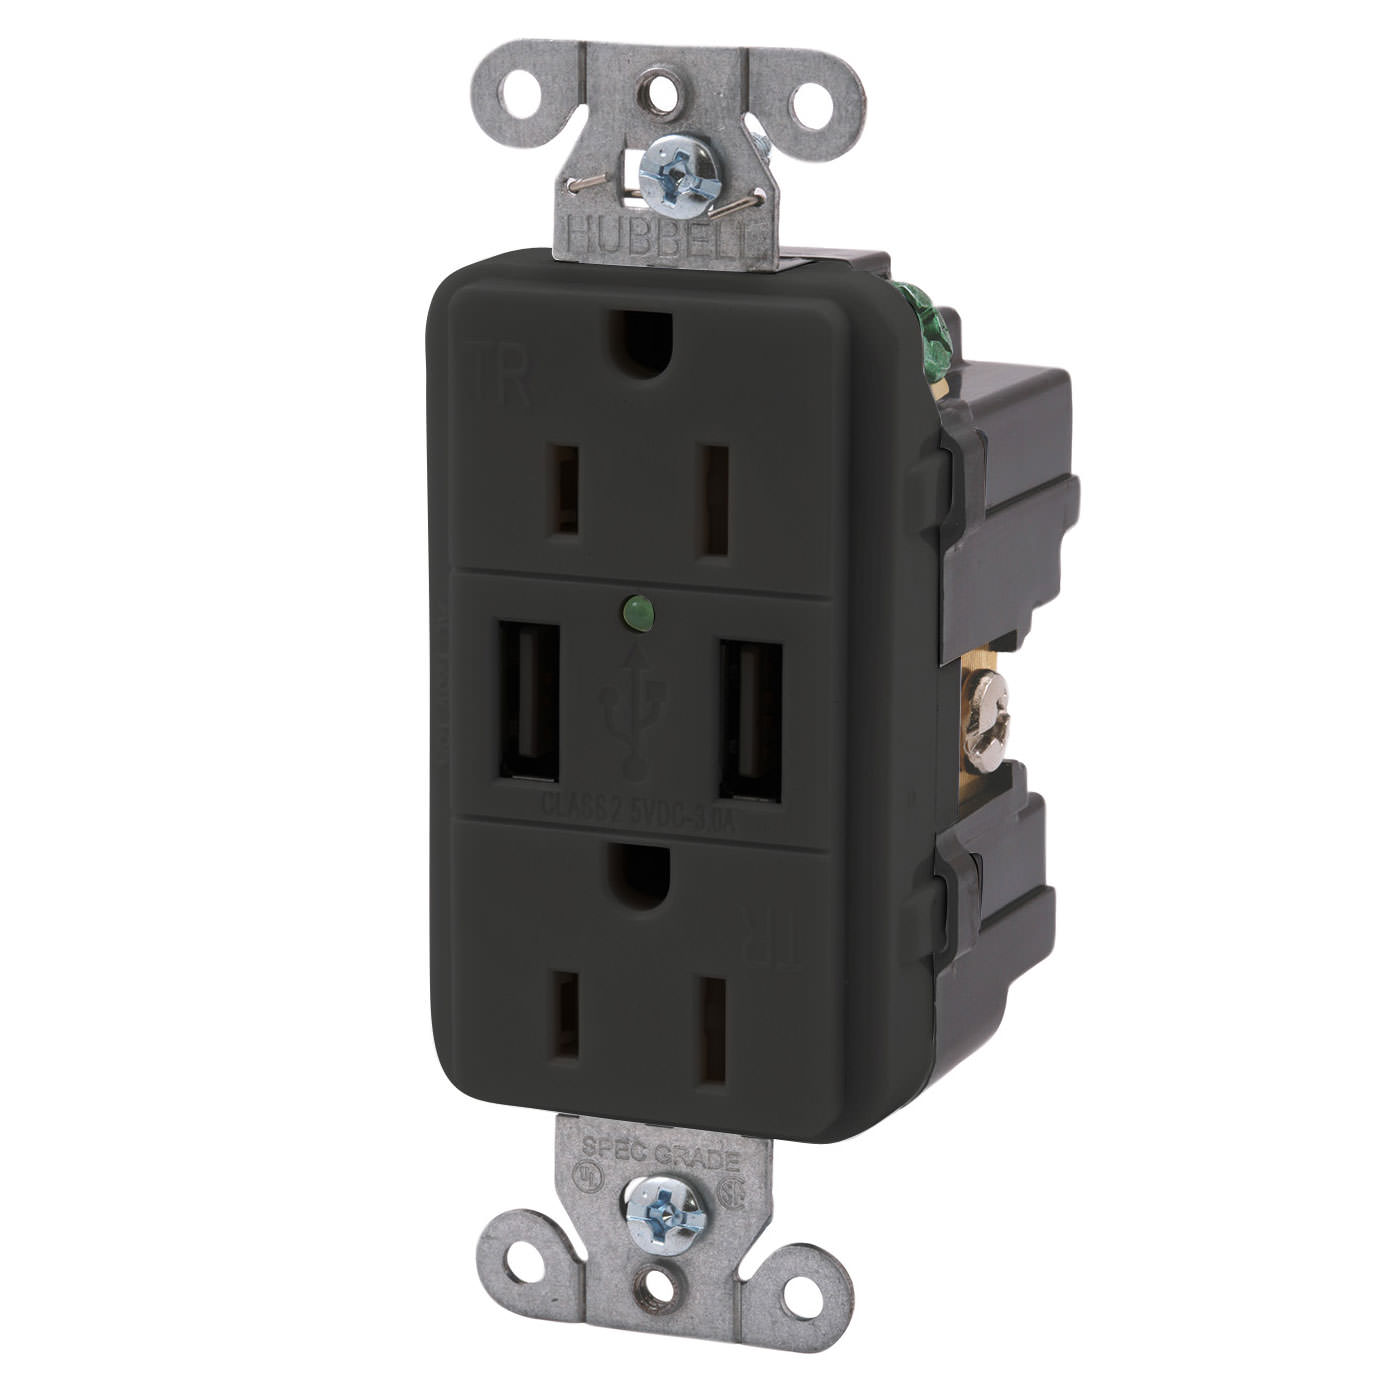 Double USB Charger with Double 110v outlet